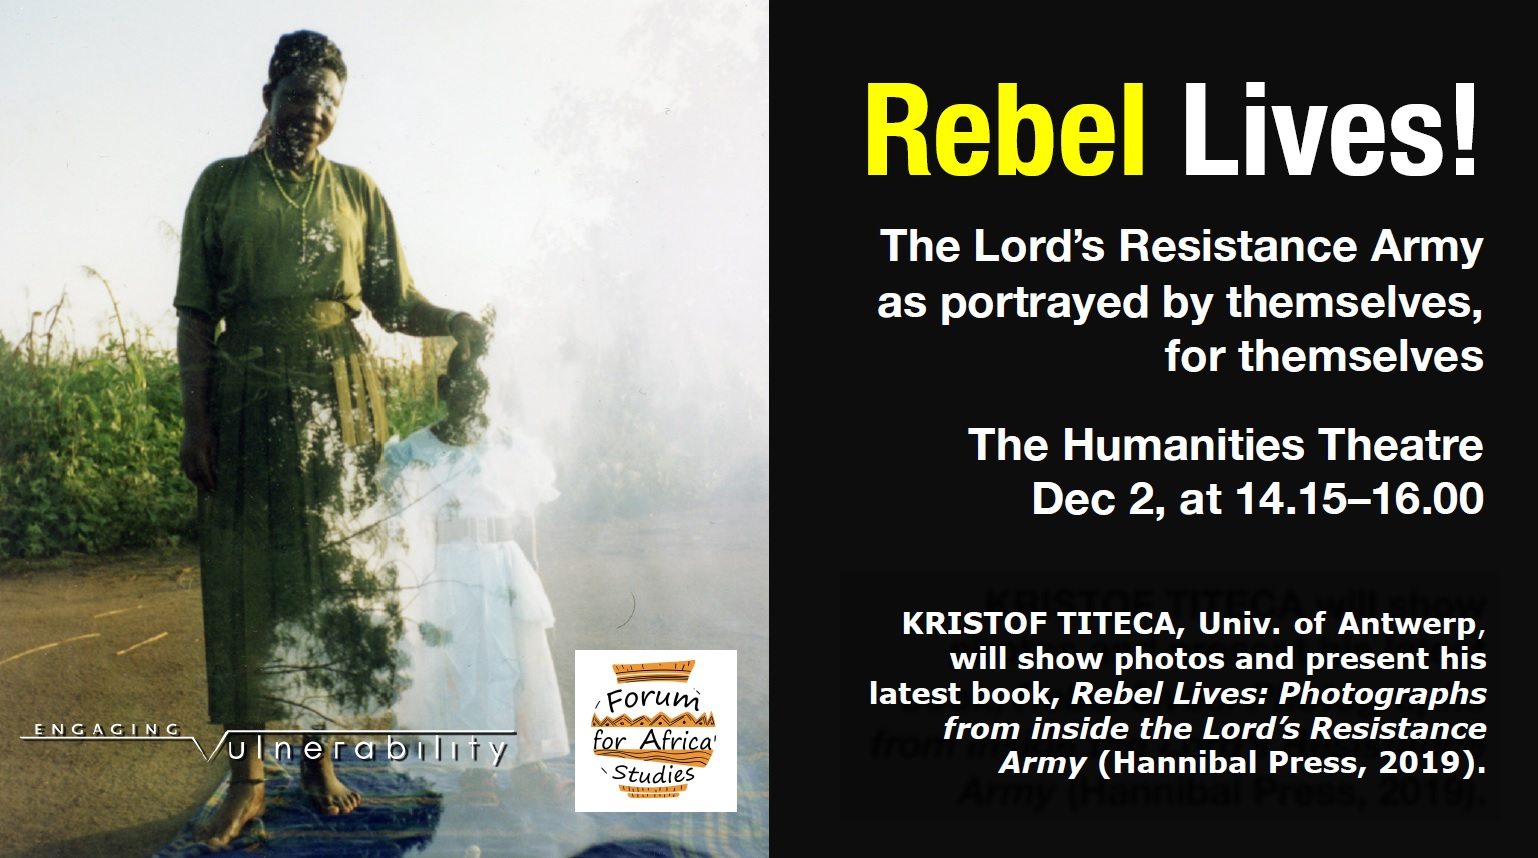 Rebel Lives: The Lord's Resistance Army as portrayed by themselves, for themselves